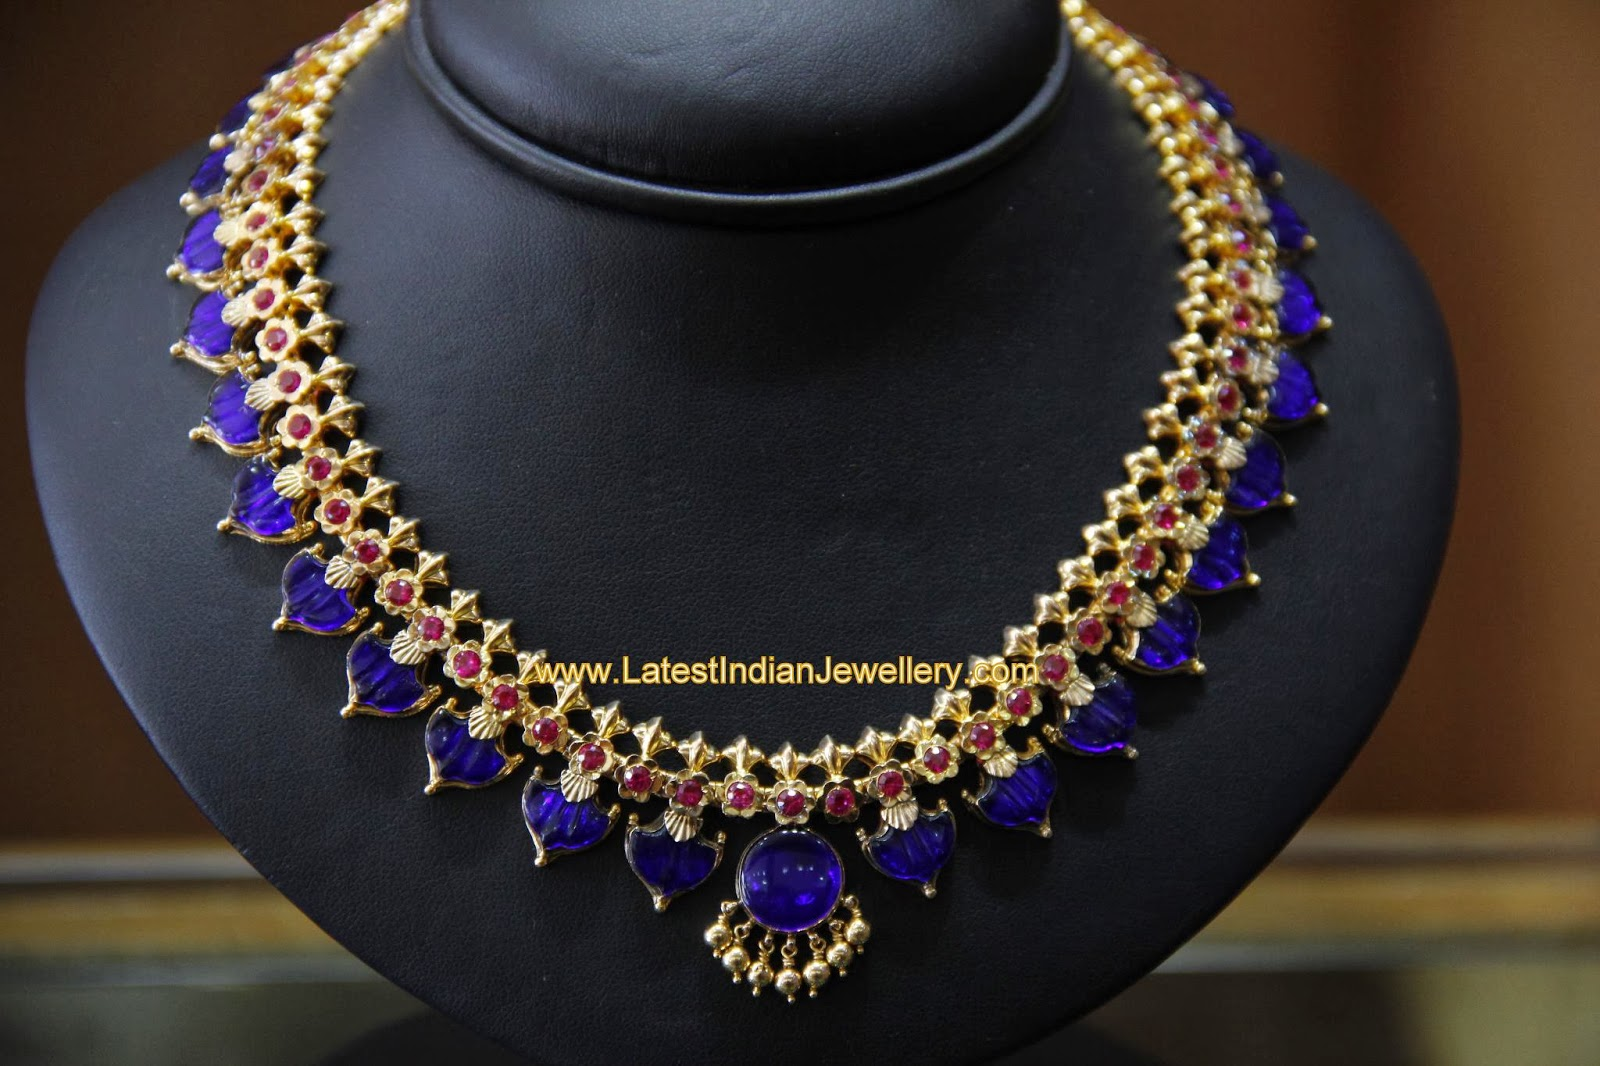 South Indian Palakka Mala - Latest Indian Jewellery Designs